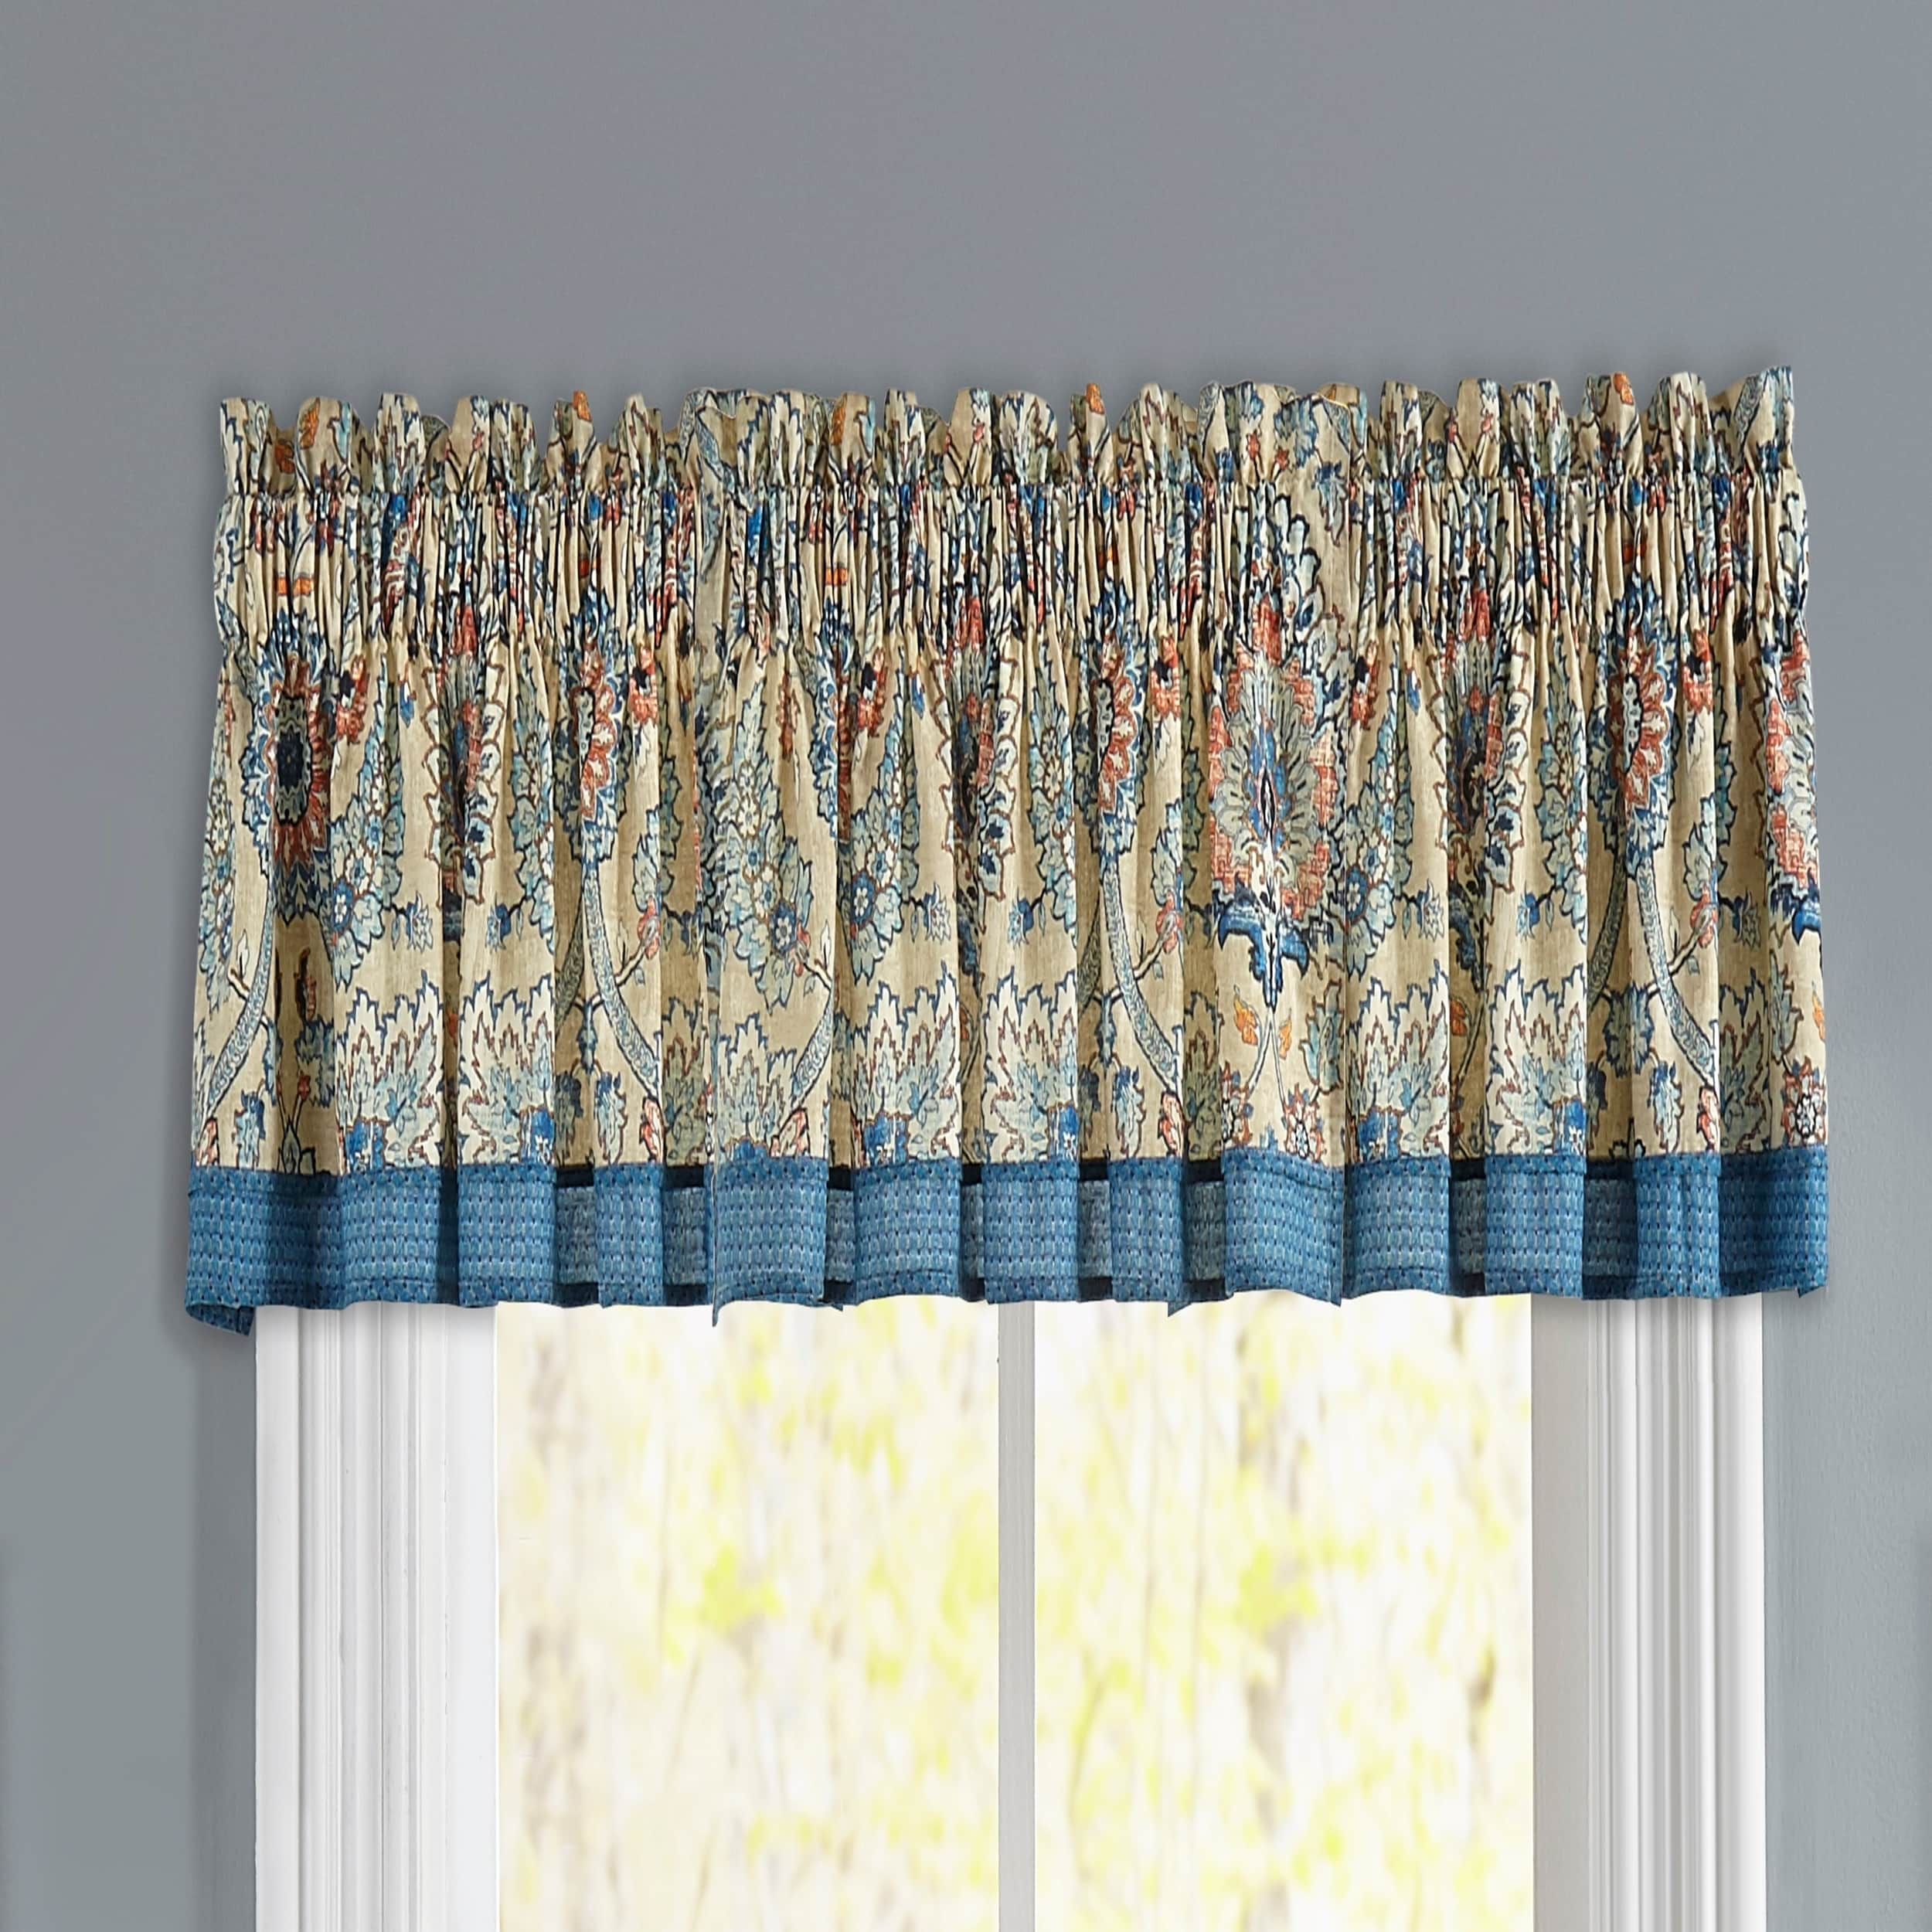 living room interior fantastic drapes full valances window in of kitchen uncategorized waverly curtains size with for stunning inside valance